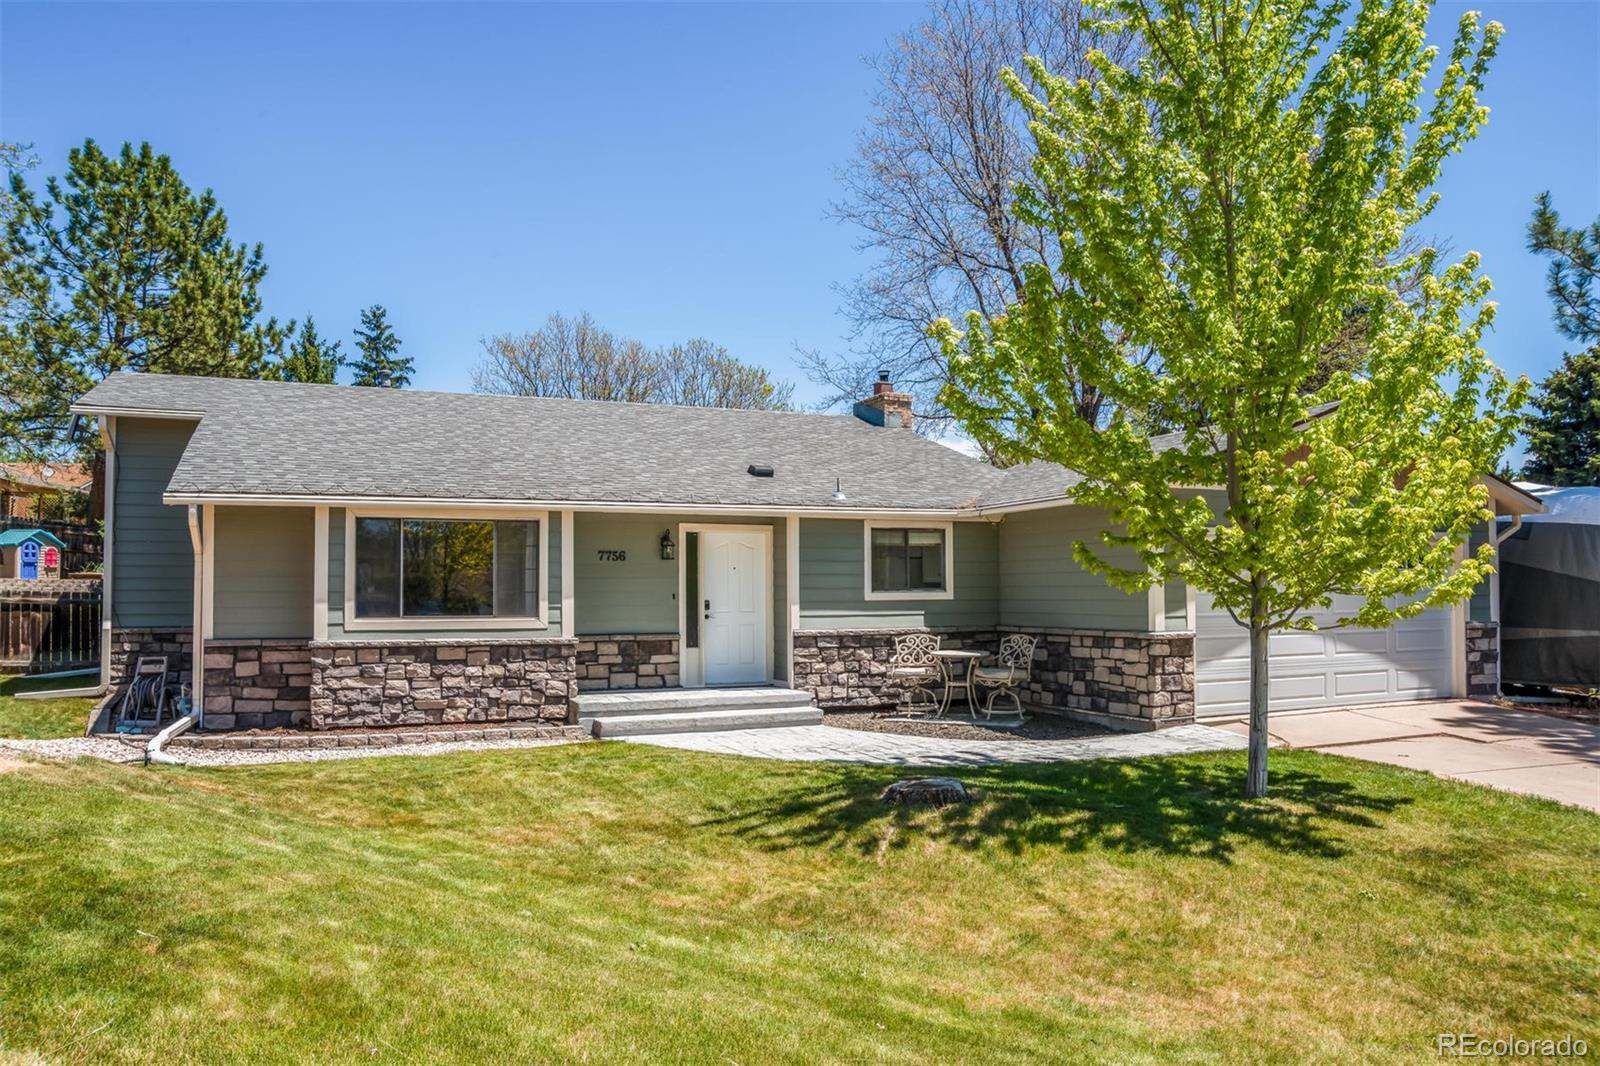 7756 S Kendall Court Property Photo - Littleton, CO real estate listing